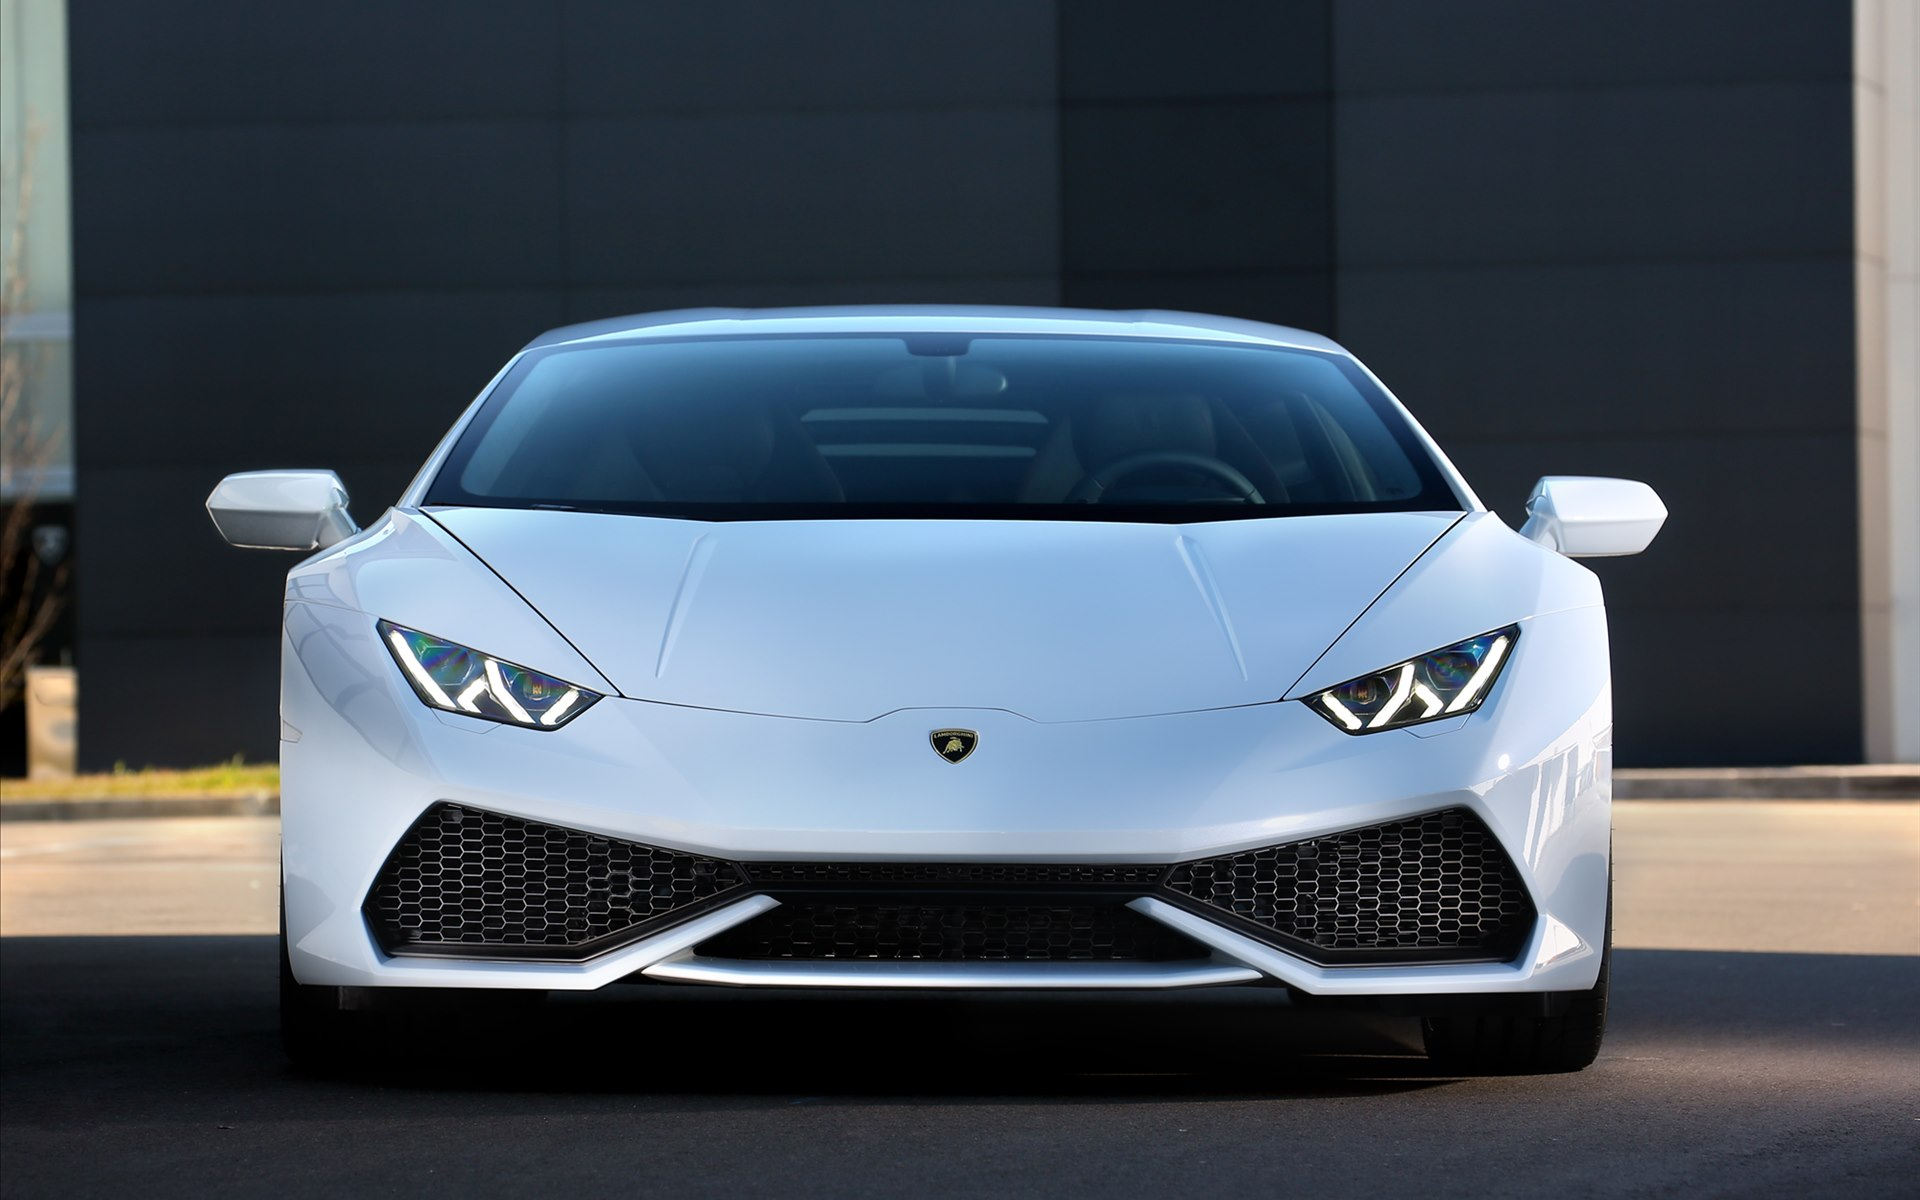 2015 lamborghini huracan lp 610 4 wallpaper hd car wallpapers. Black Bedroom Furniture Sets. Home Design Ideas